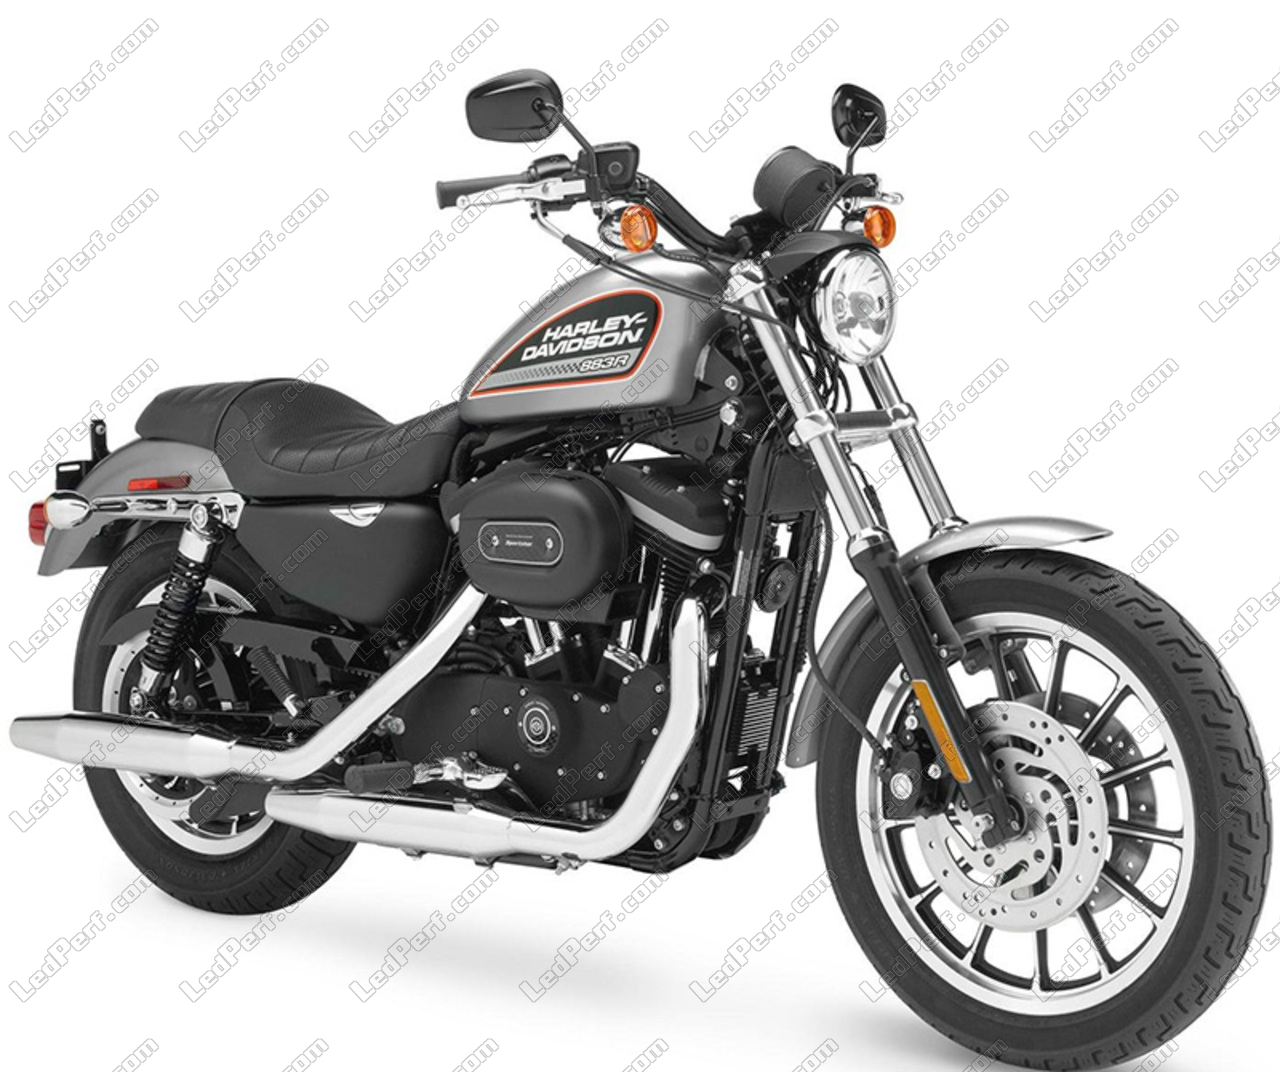 LED headlight for Harley-Davidson XL 883 R - Round motorcycle optics  approved